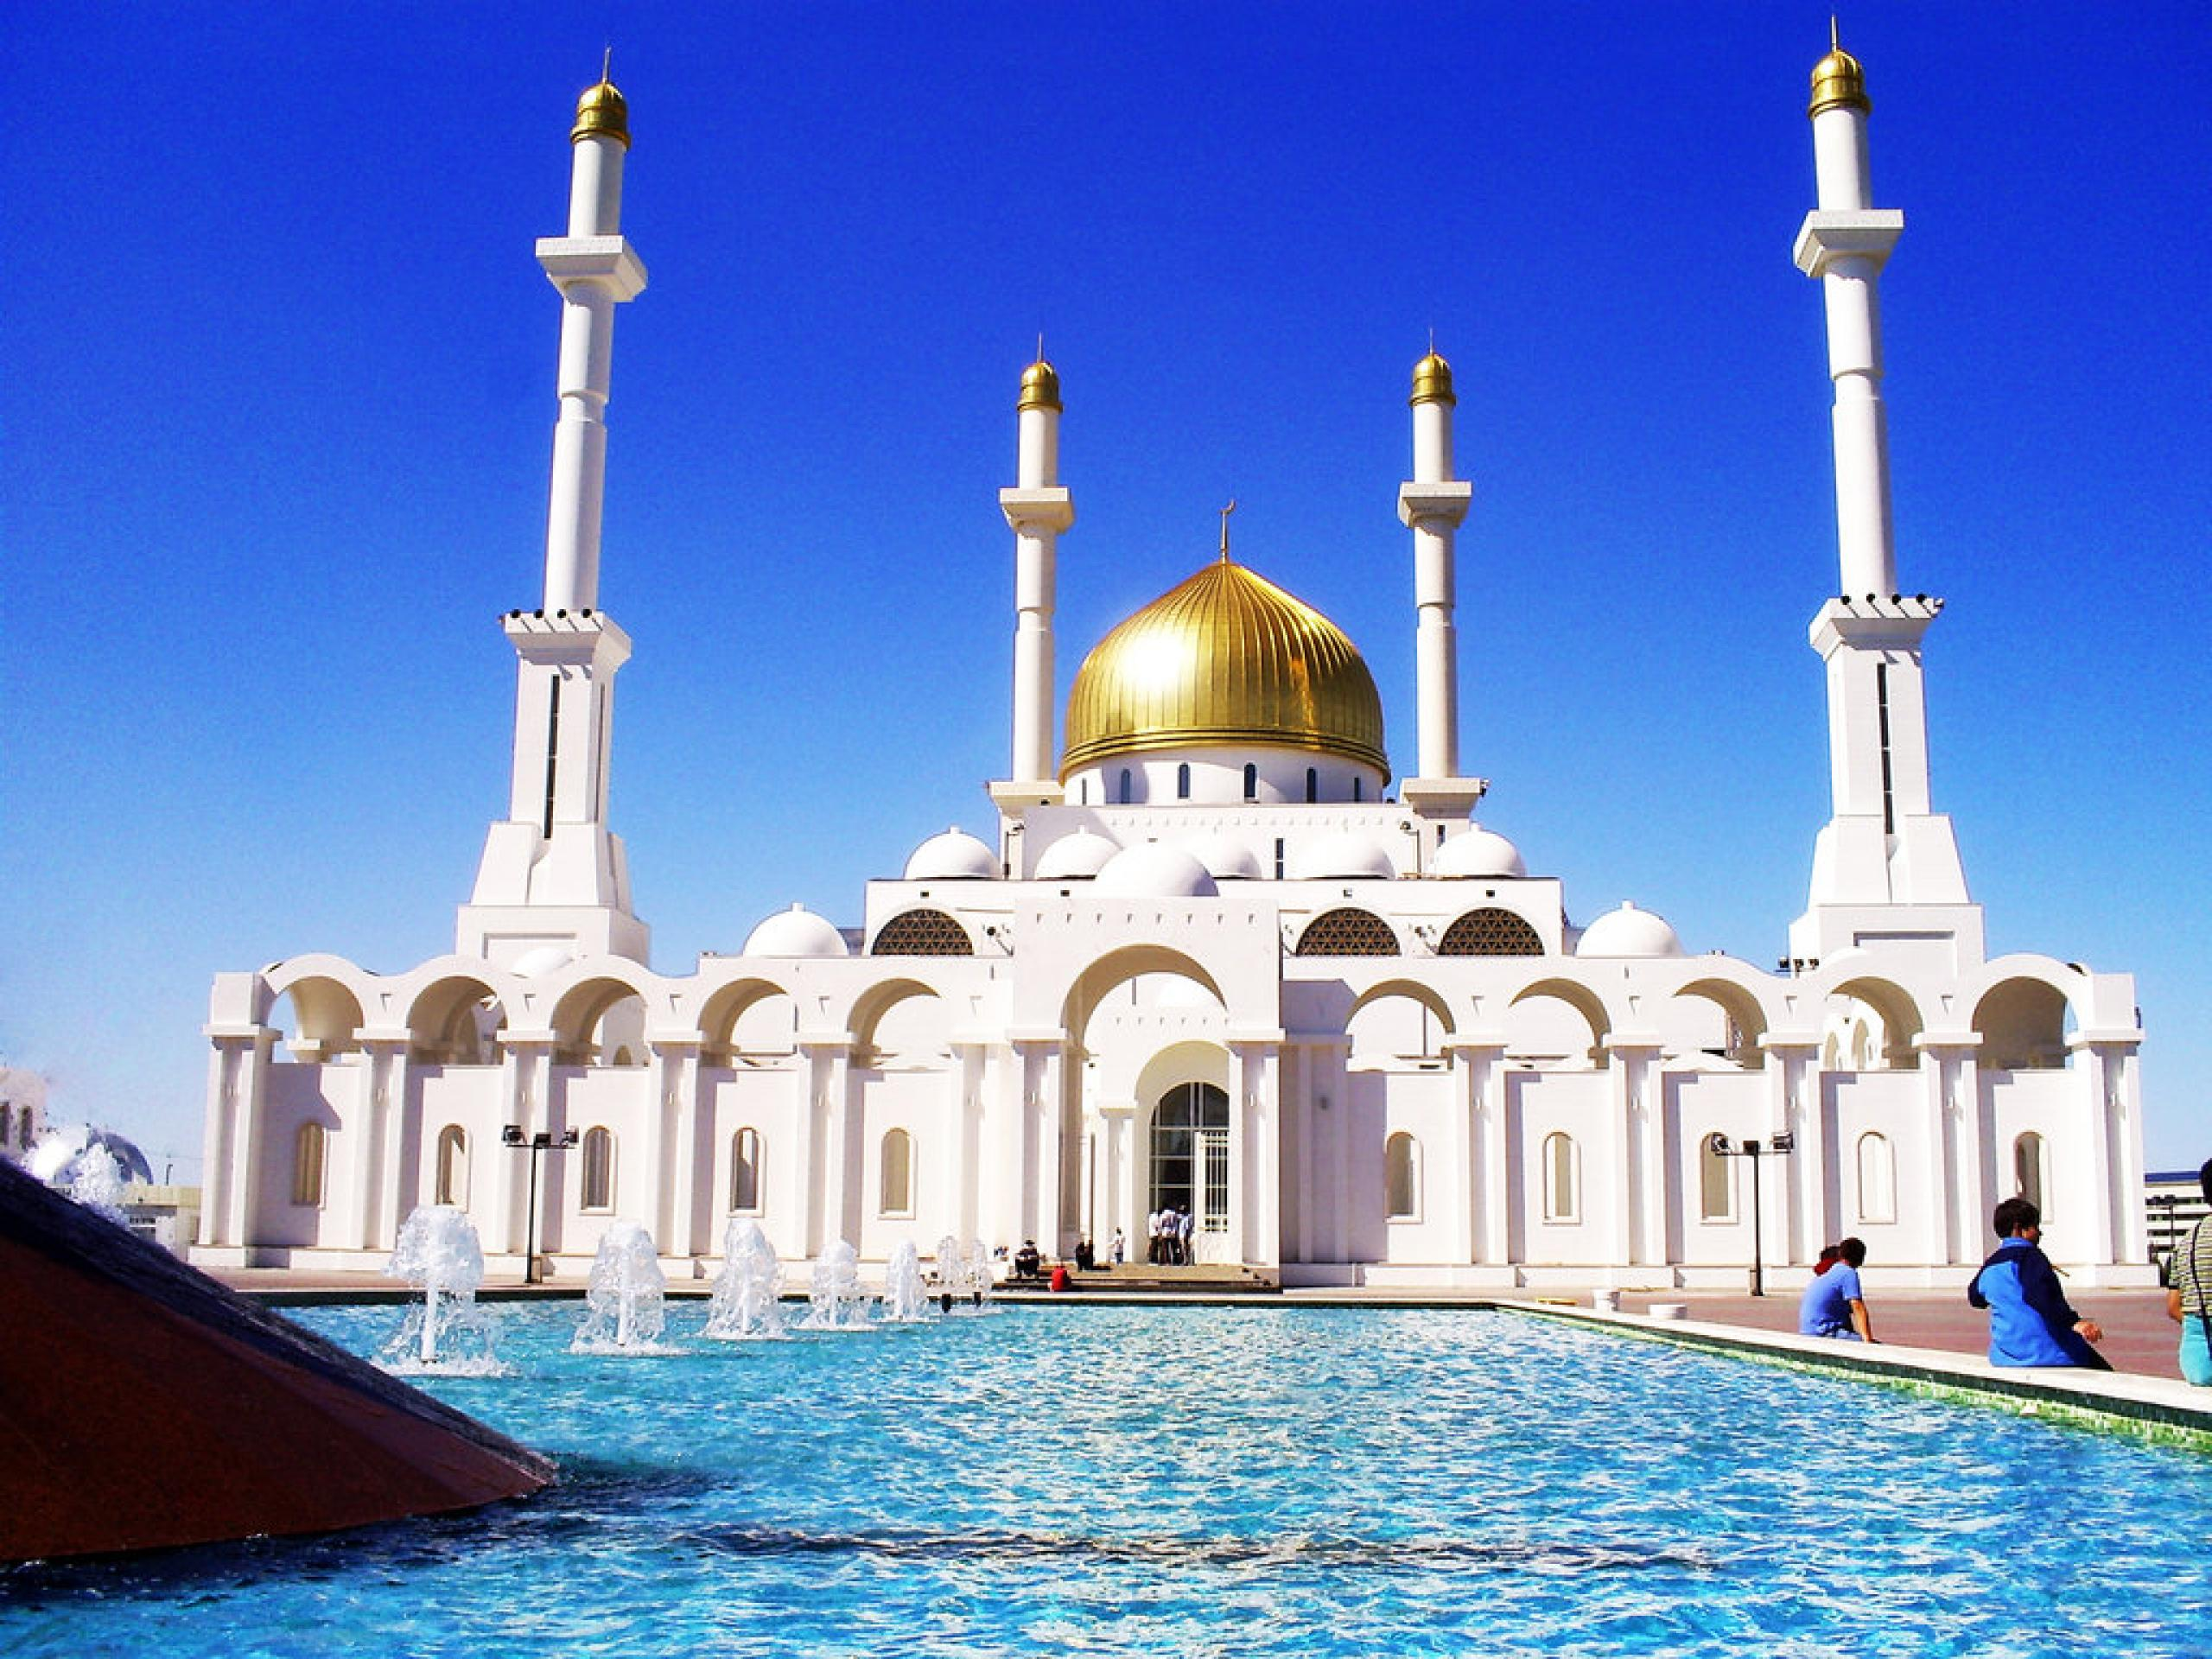 Grand mosque and Blue mosque